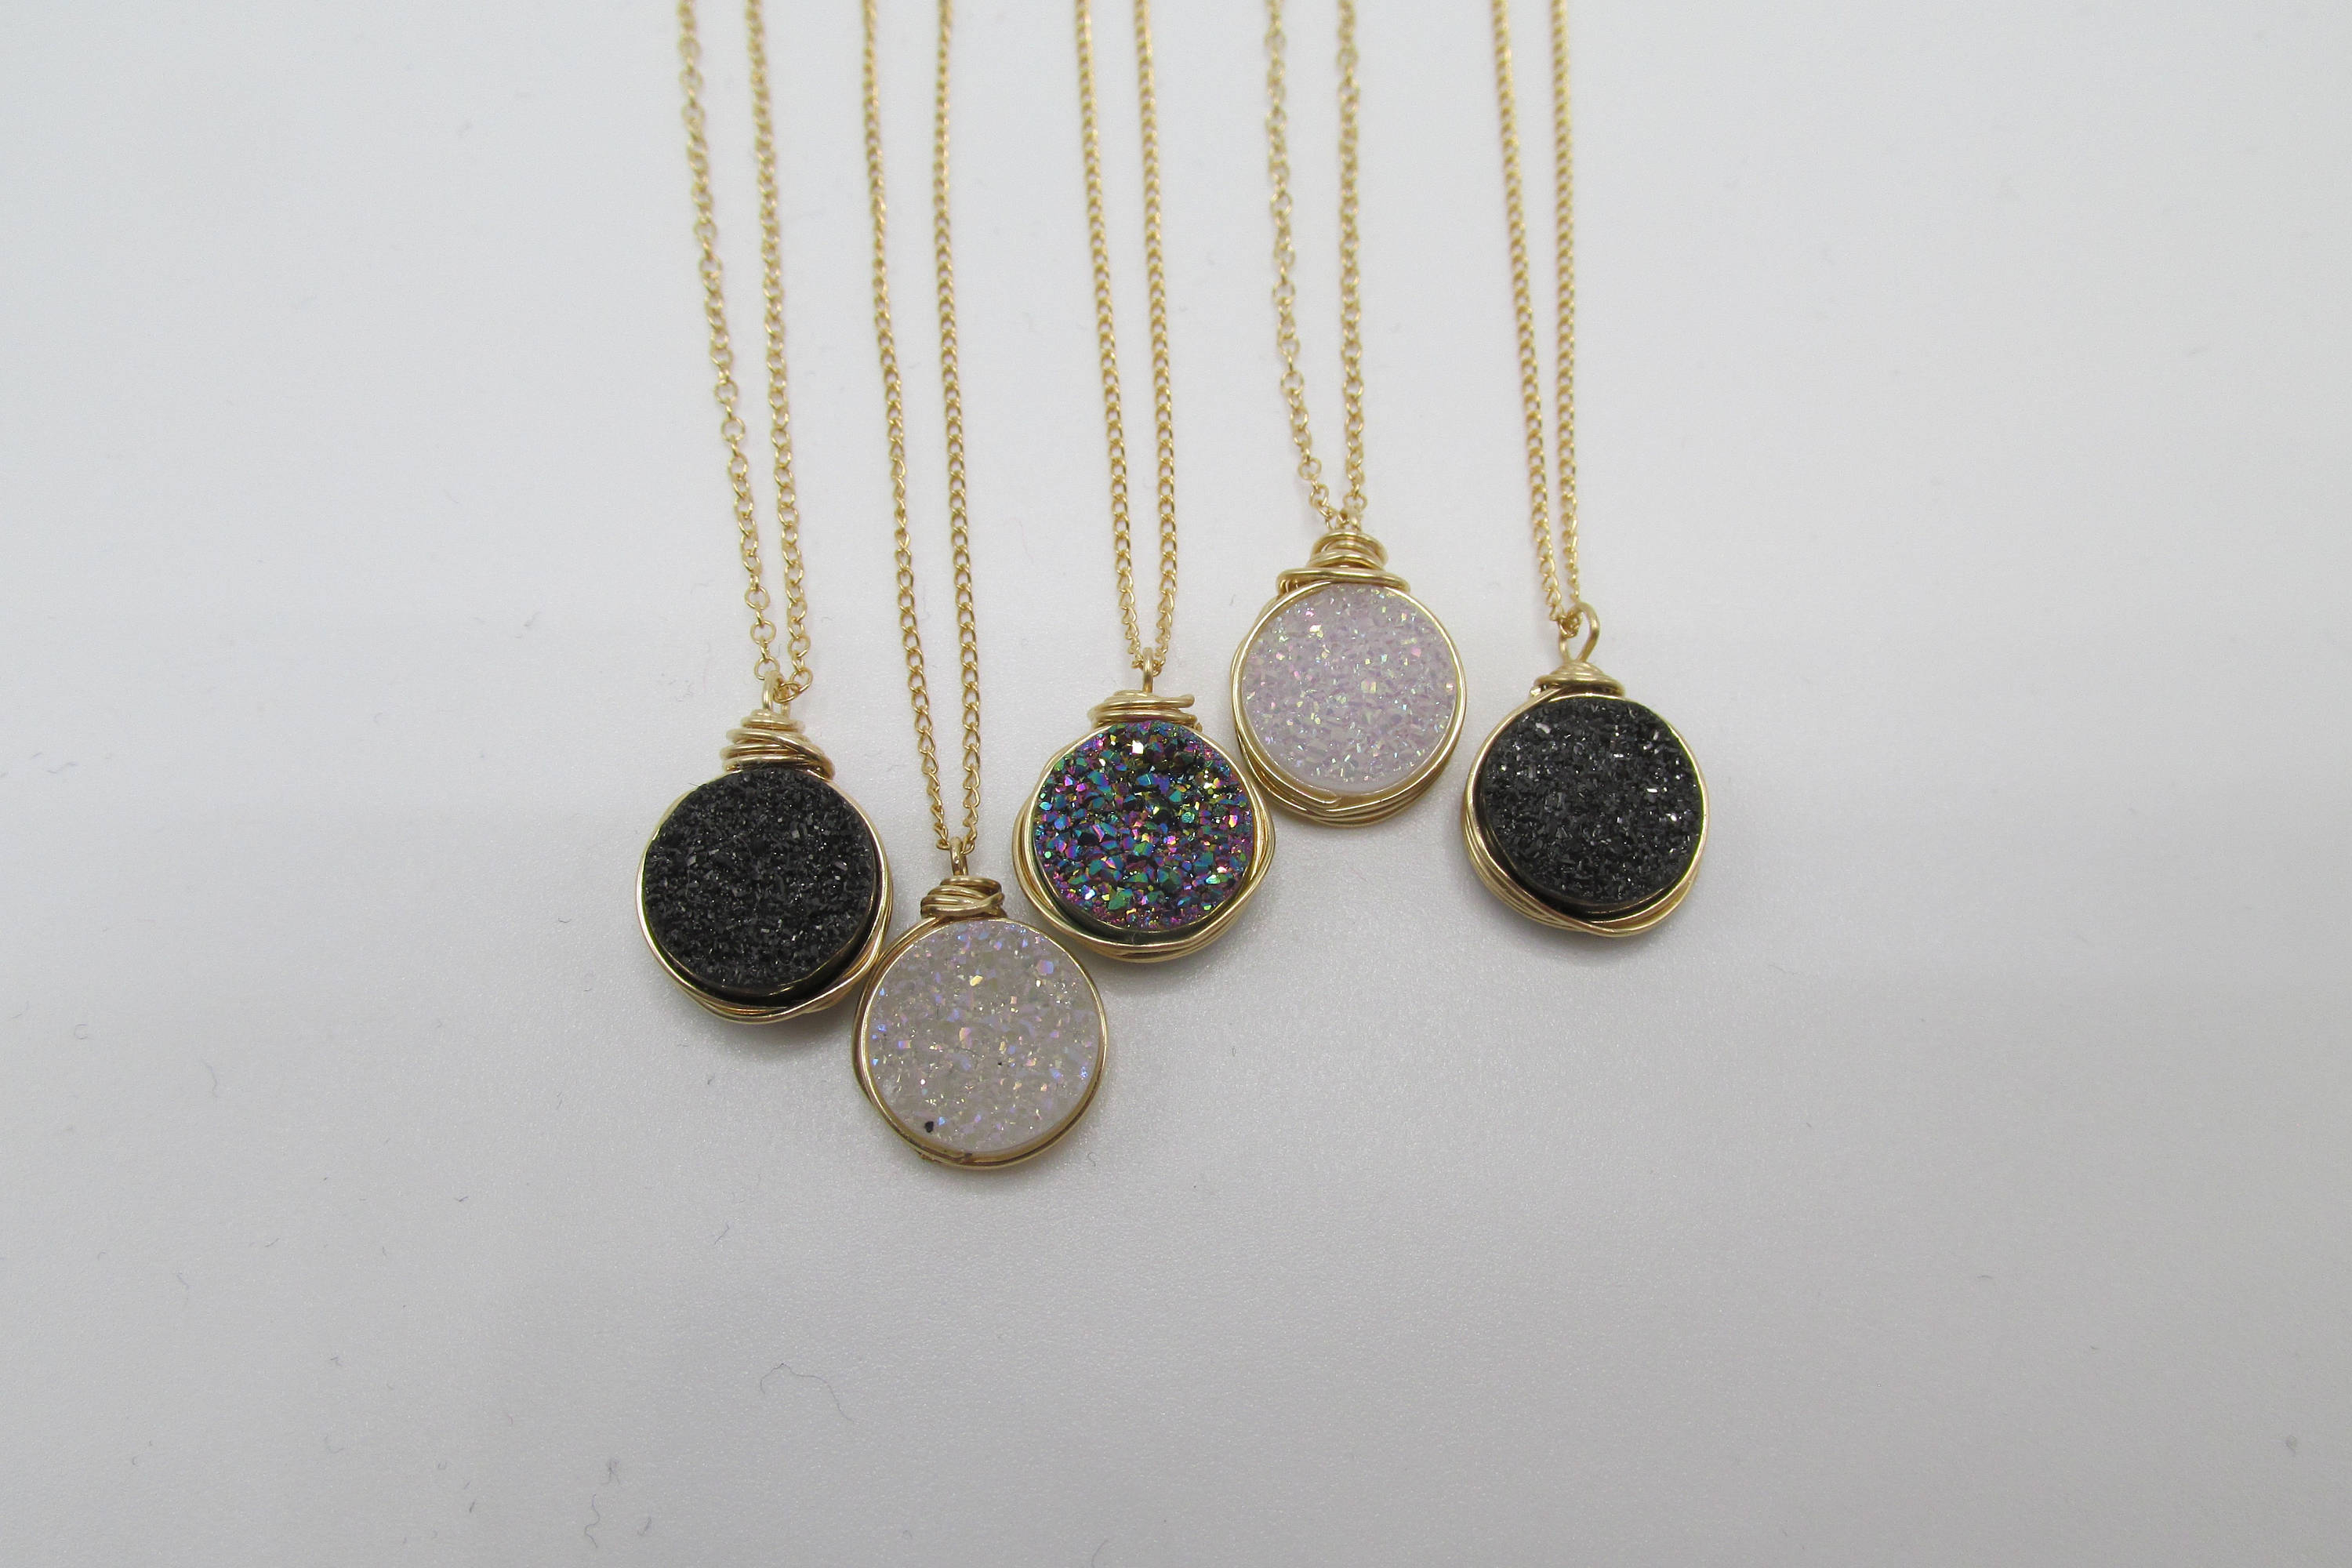 Circle Druzy Pendant  Sparkly Crystal, Small Druzy Pendant, Wire Wrapped  Druzy Necklace,small Druzy Necklace Pertaining To Current Circle Of Sparkle Necklaces (Gallery 12 of 25)